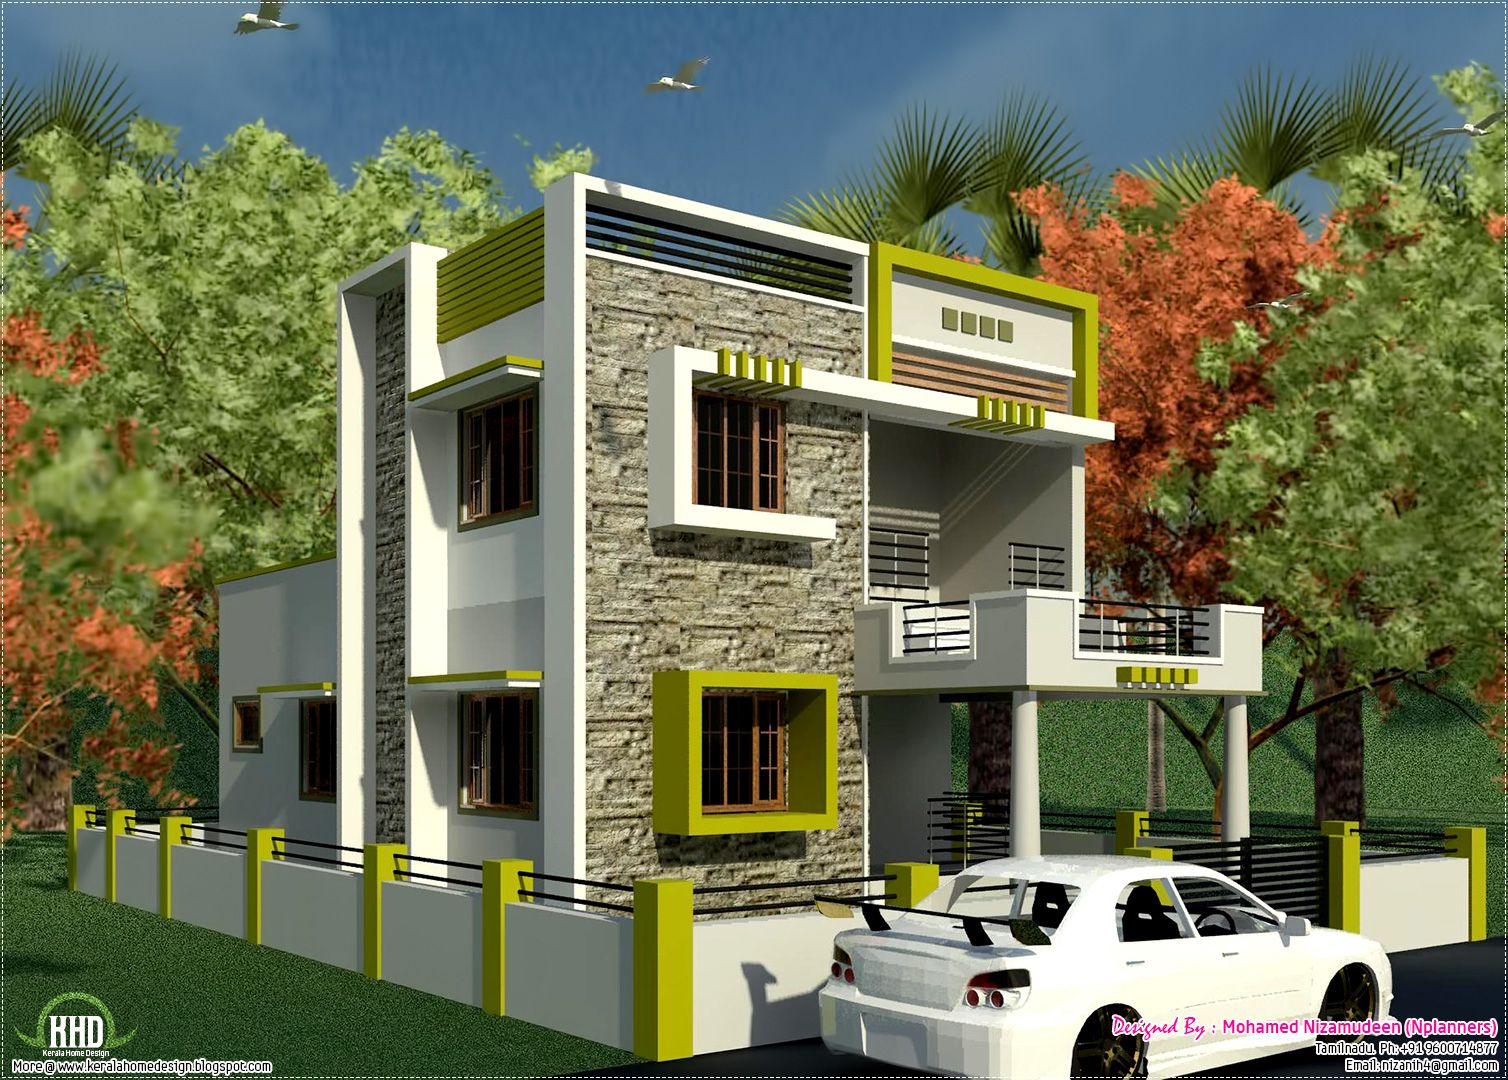 Small house with car park design tobfav com ideas for for Exterior design of small houses